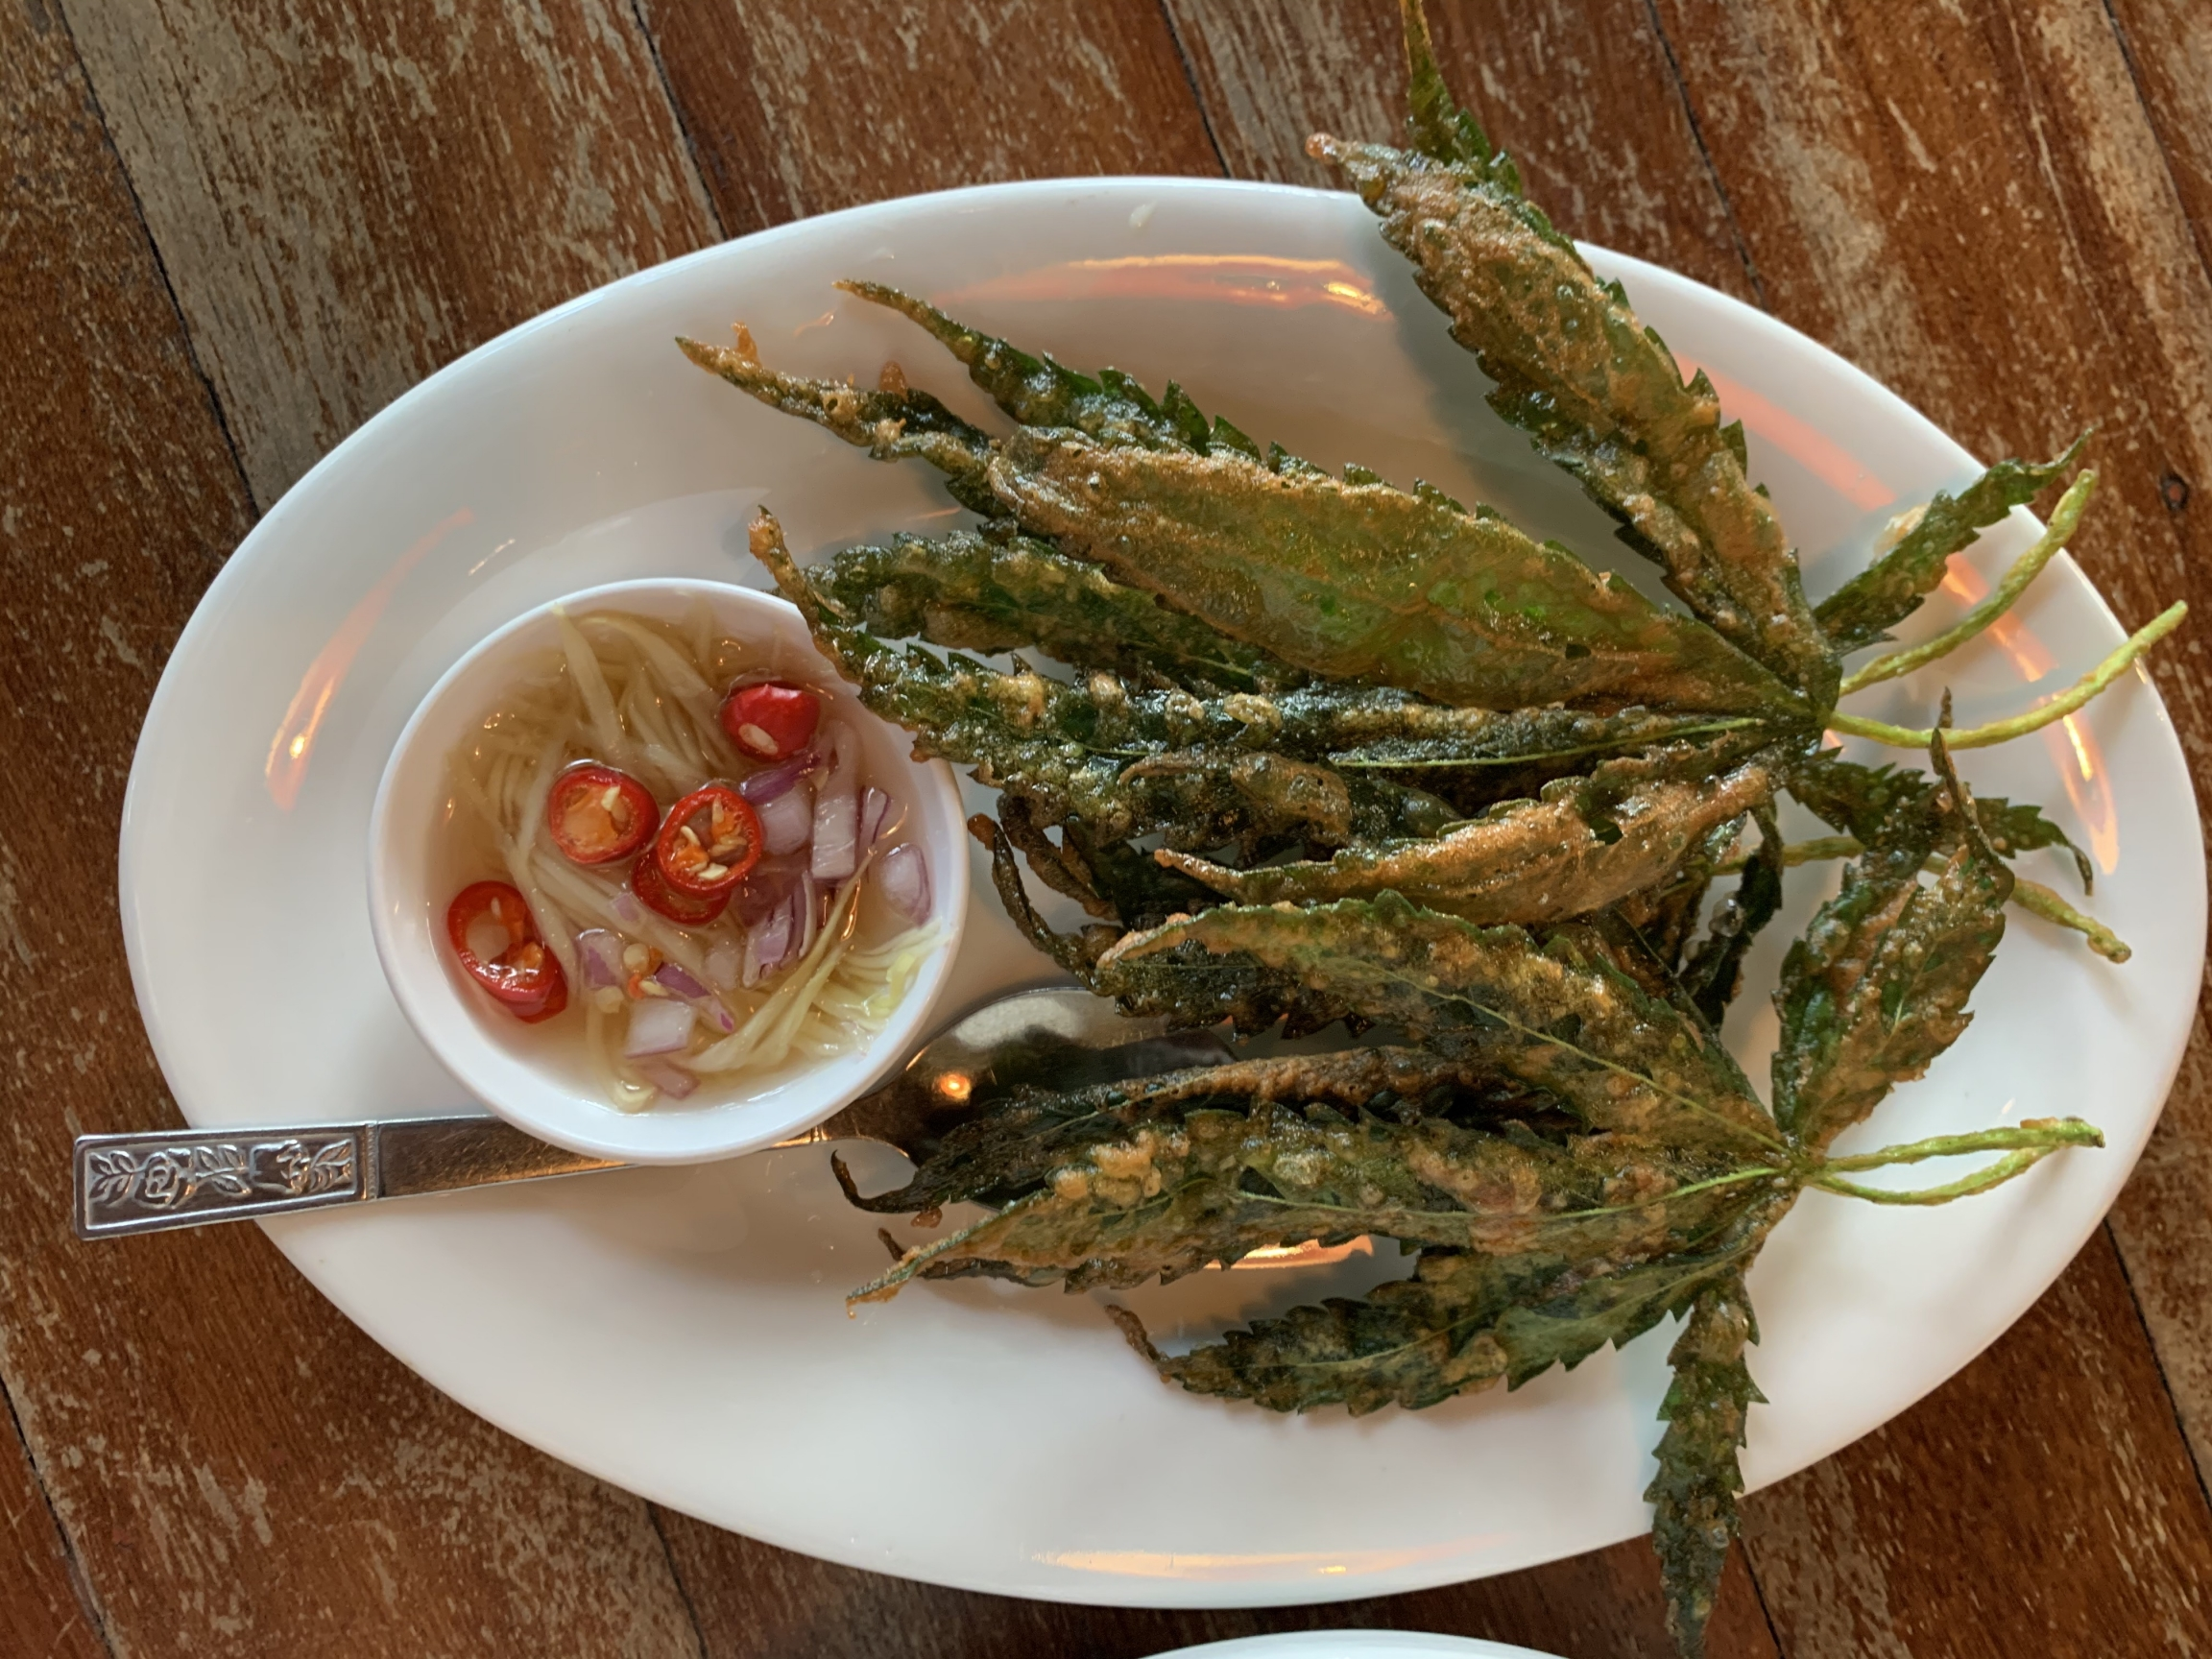 Cannabis leaves are incorporated into dishes at arestaurant called Baan Lao Ruang (The Storytelling House) in a rural area outside of Bangkok.